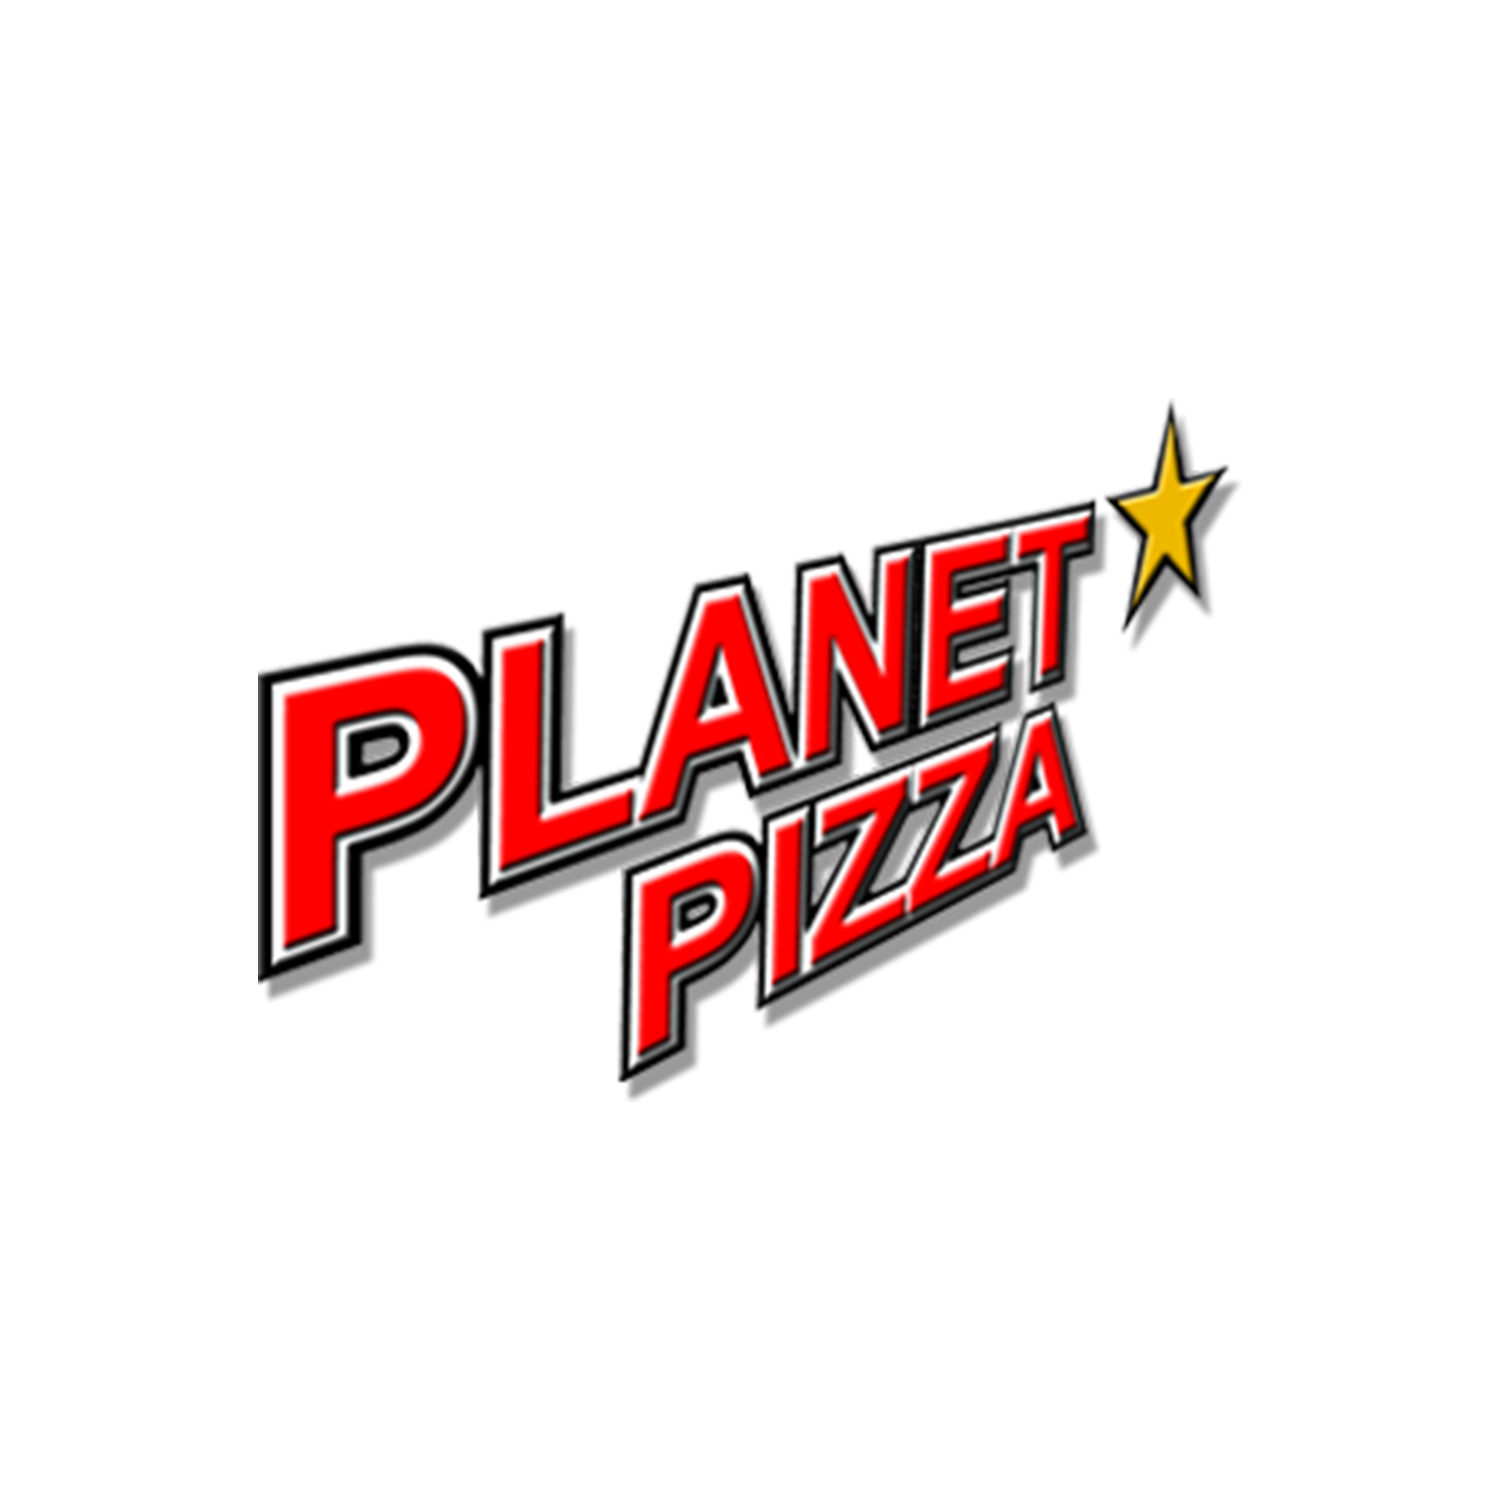 Planet Pizza:  Planet Pizza is Fairfield County's leading family-owned pizzeria group.